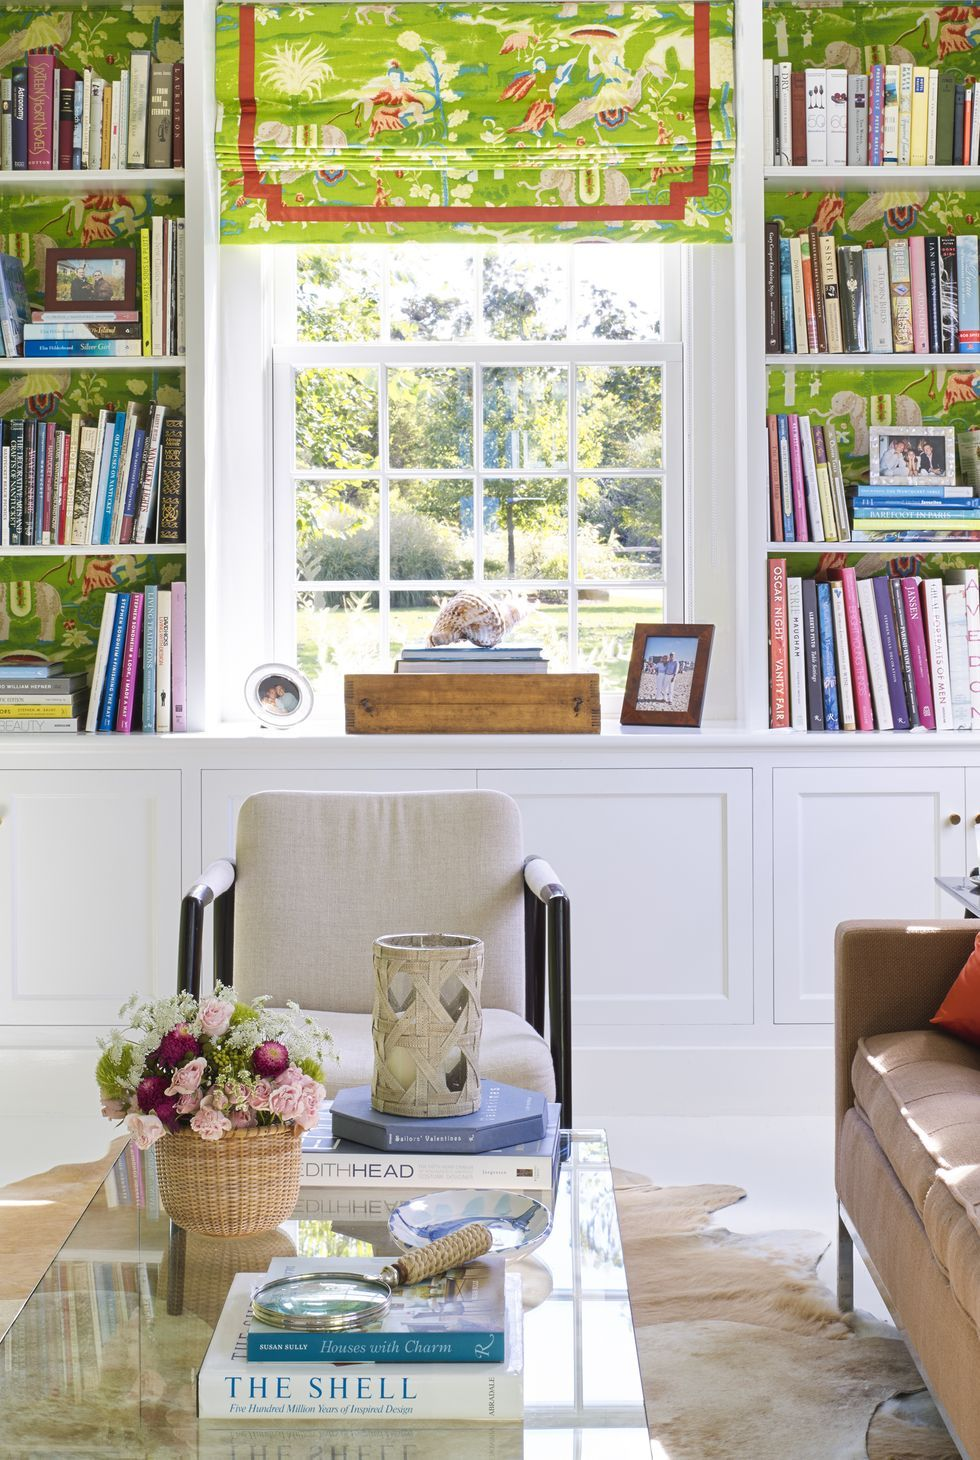 Classic Home Library Design: Here Are 45 Stylish Home Libraries For The Fantasy File